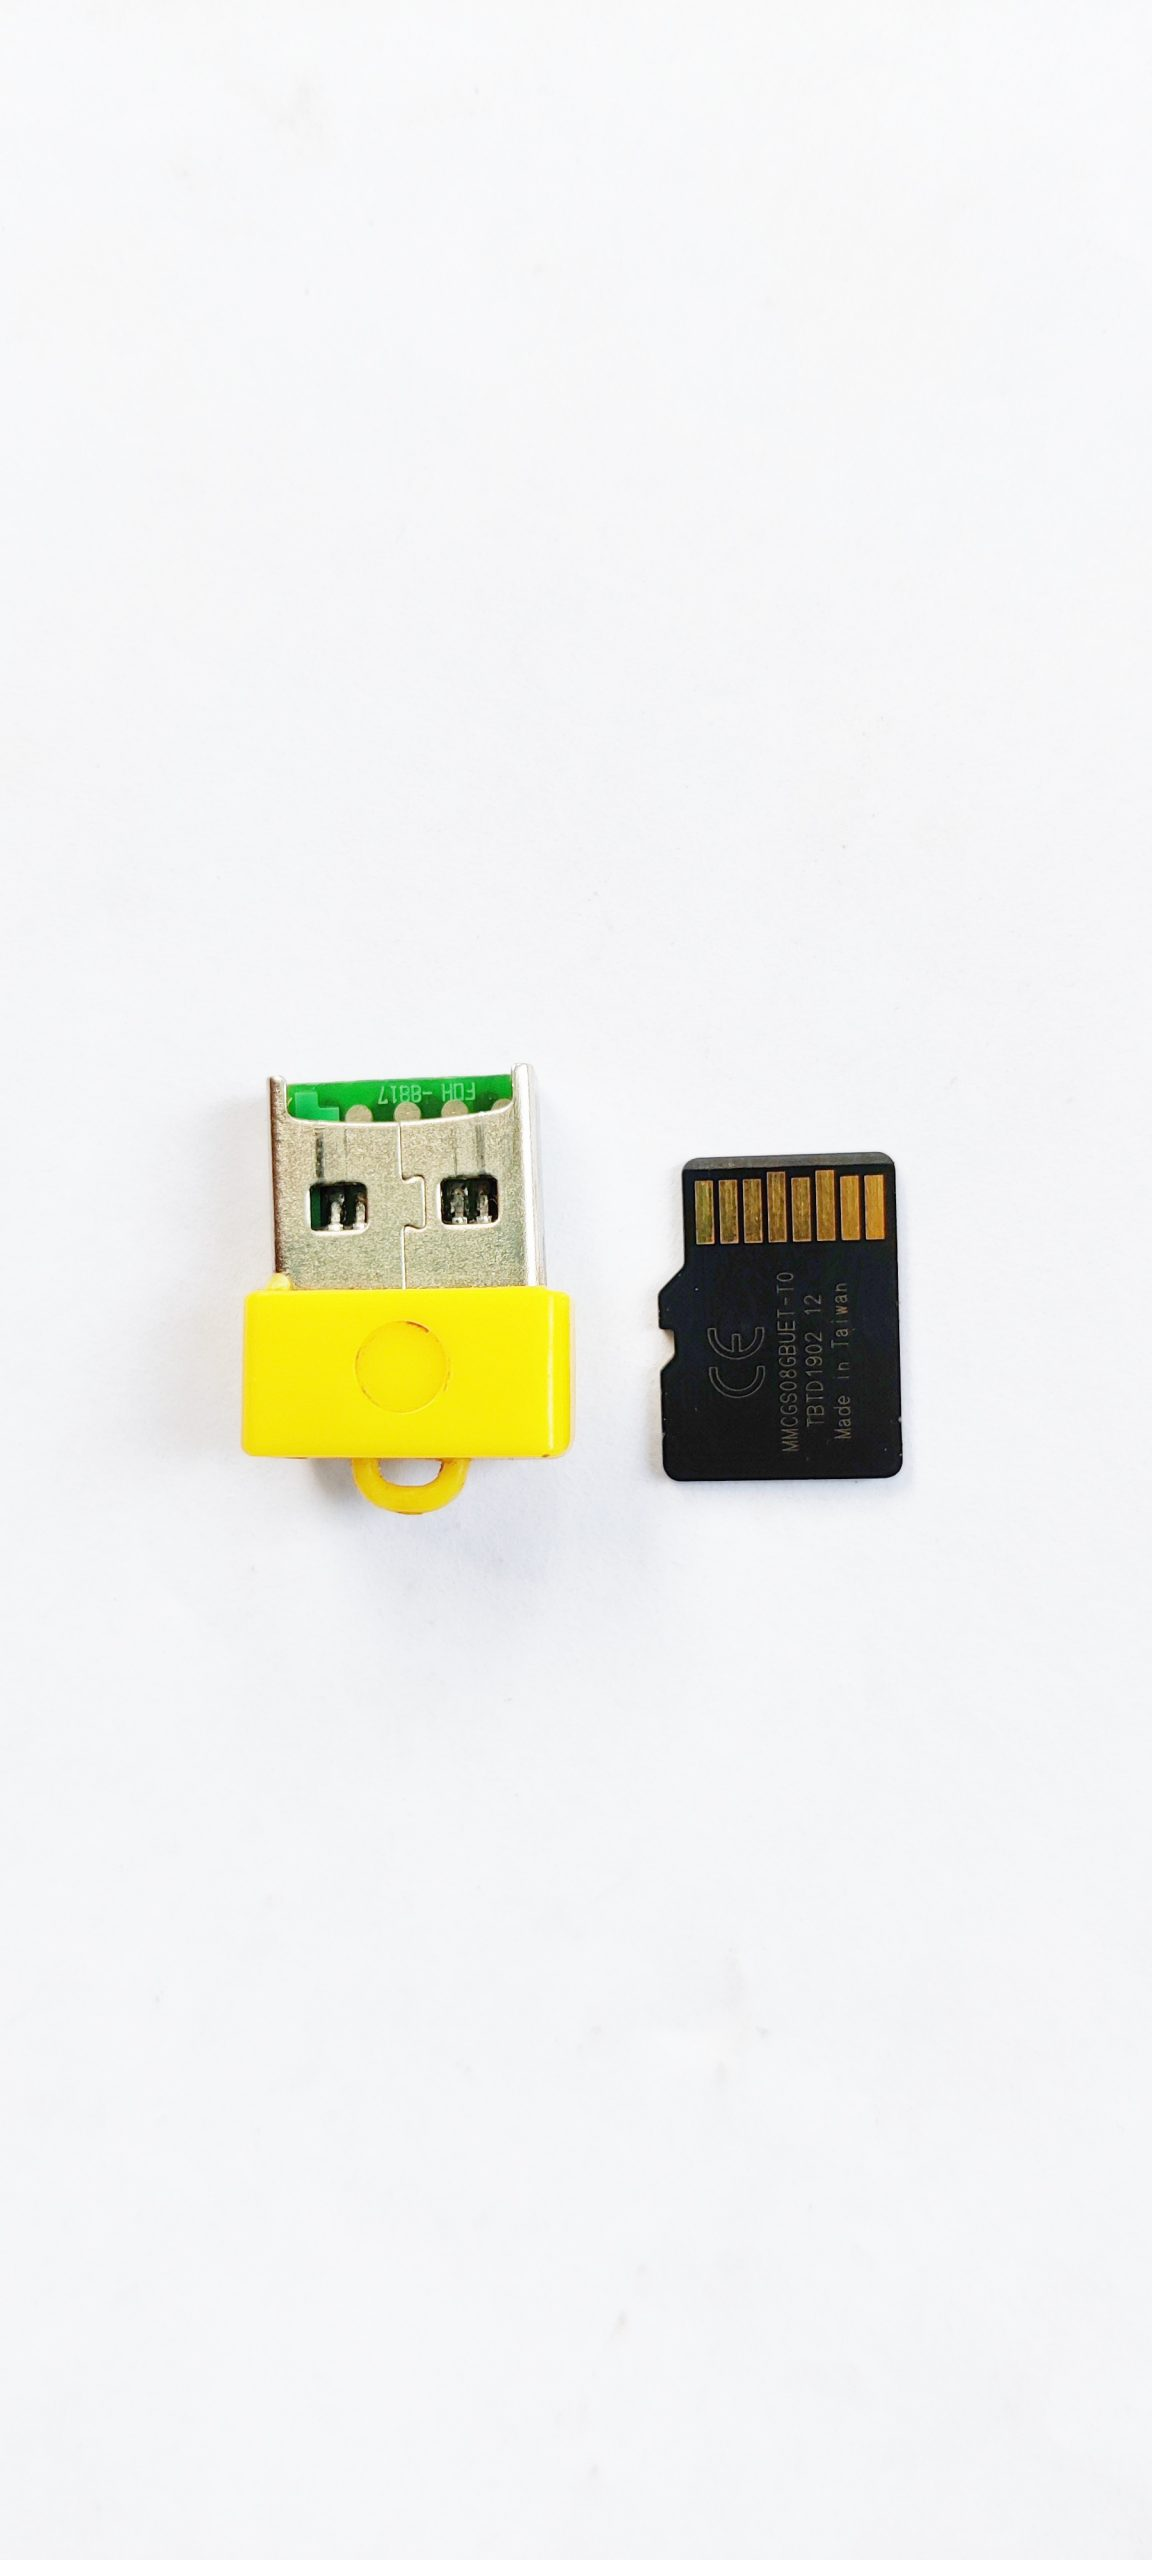 USB Card Reader and Micro SD Card